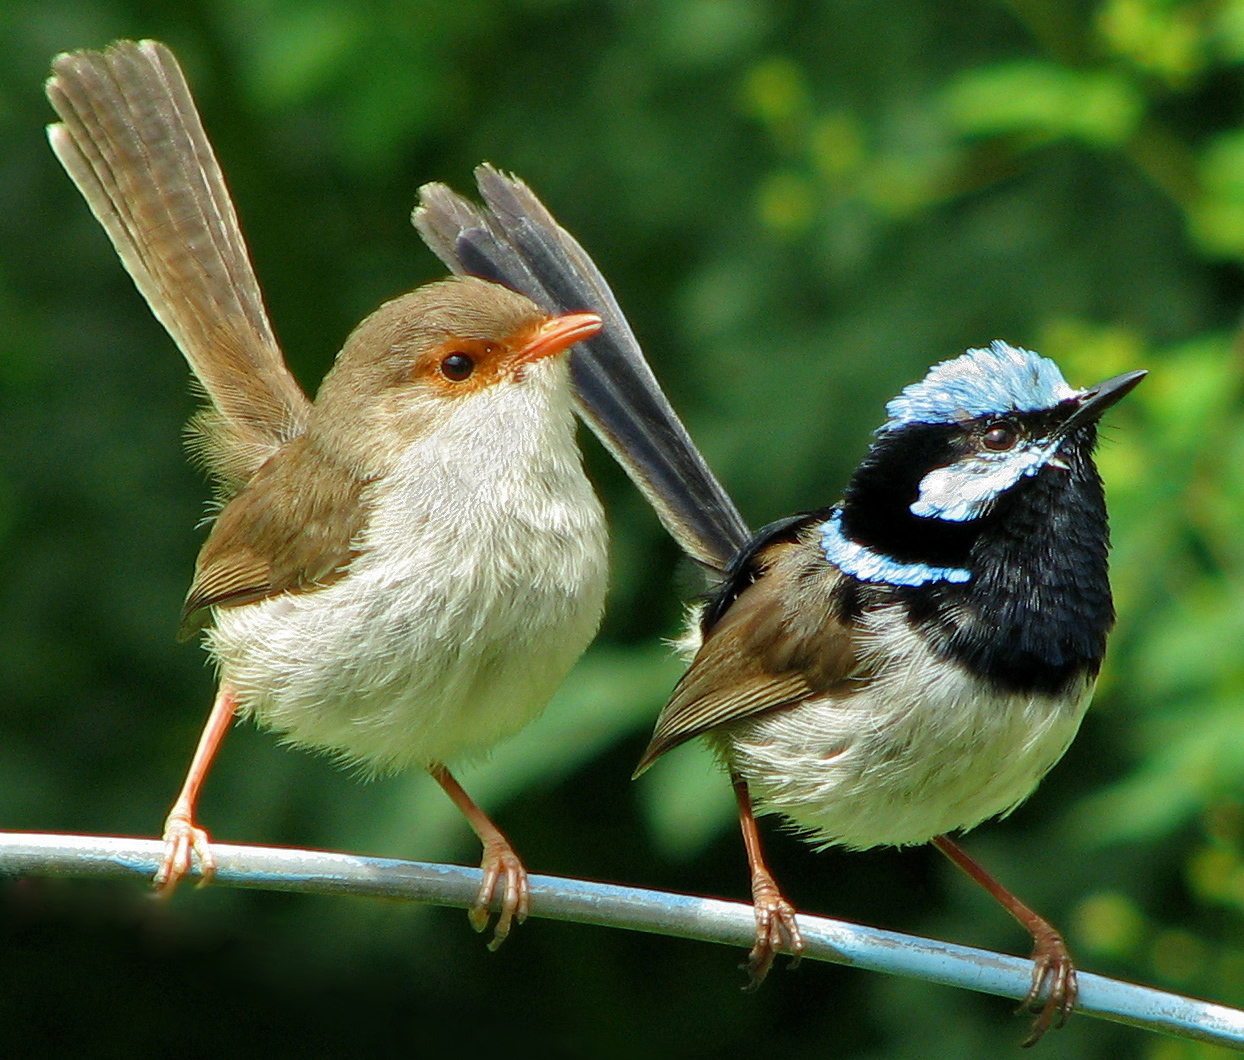 Superb Fairy Wrens